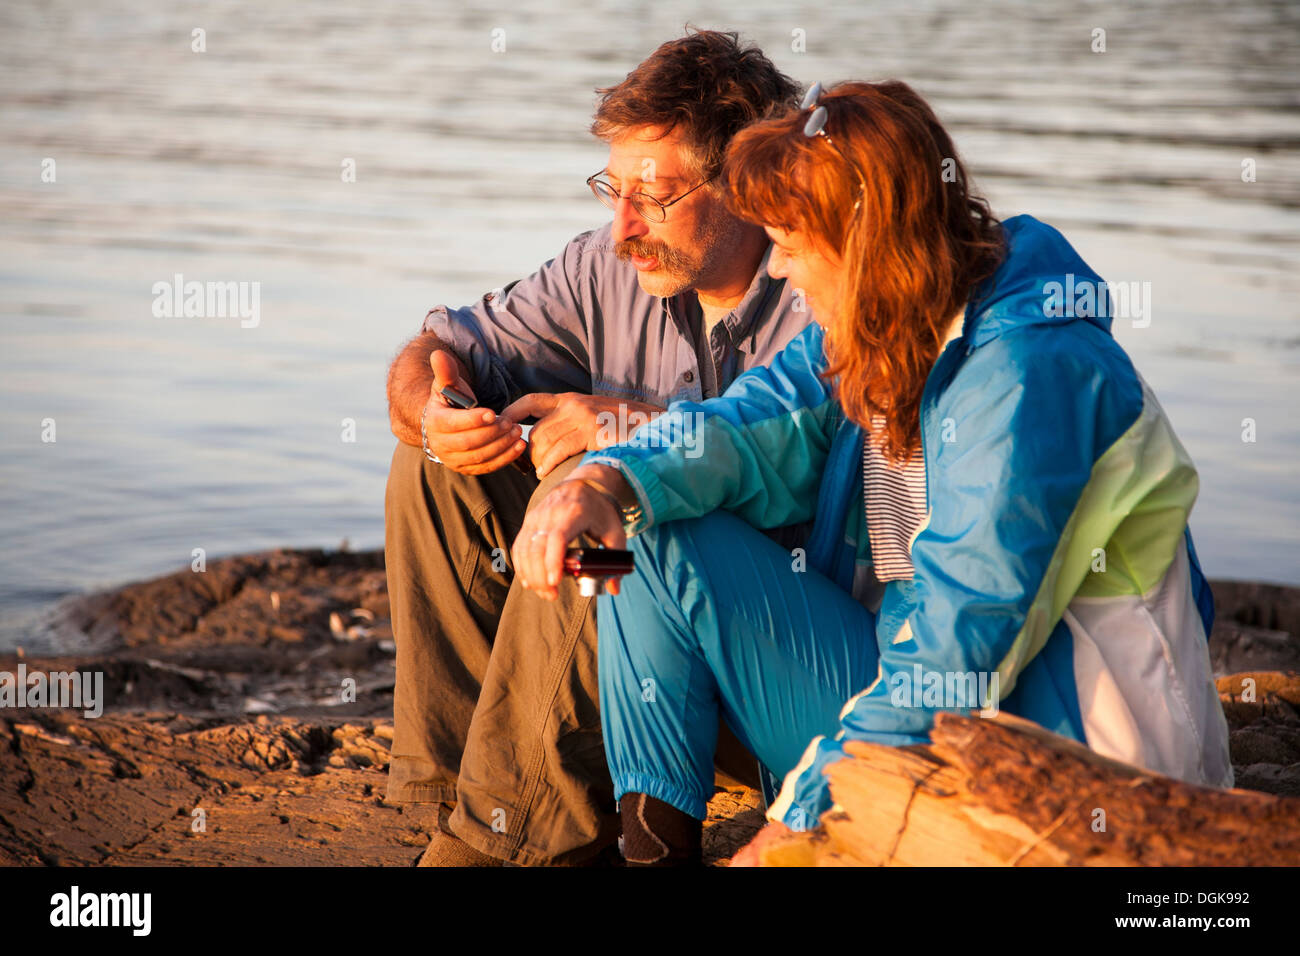 Mature couple sitting lakeside with mobile phones, Bath, Maine, USA - Stock Image